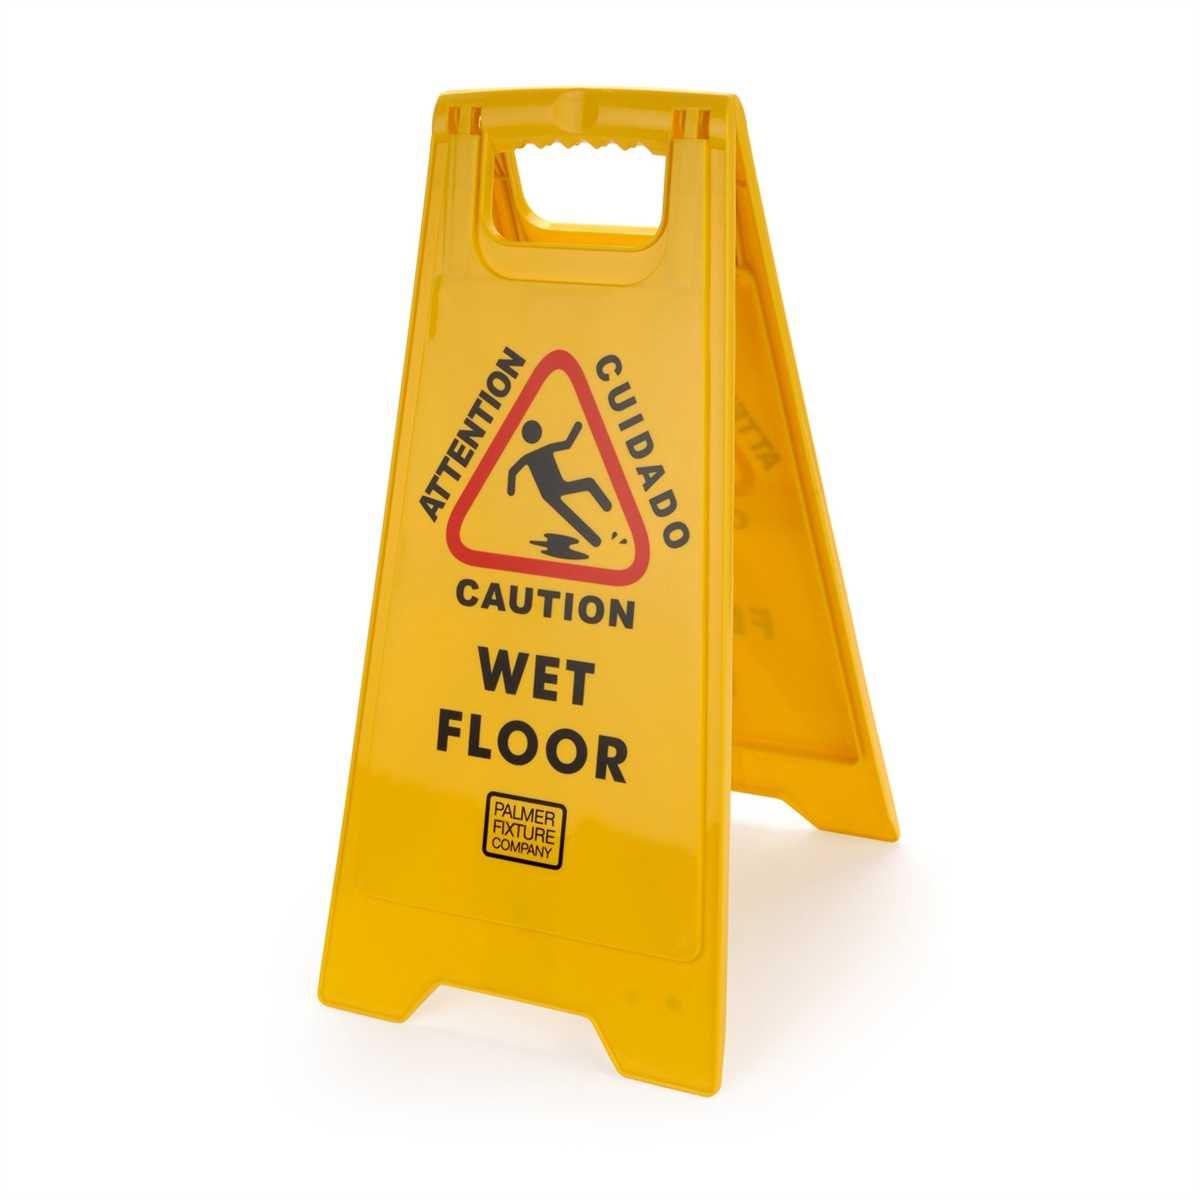 SIGN WET FLOOR CAUTION TWO SIDED BILINGUAL